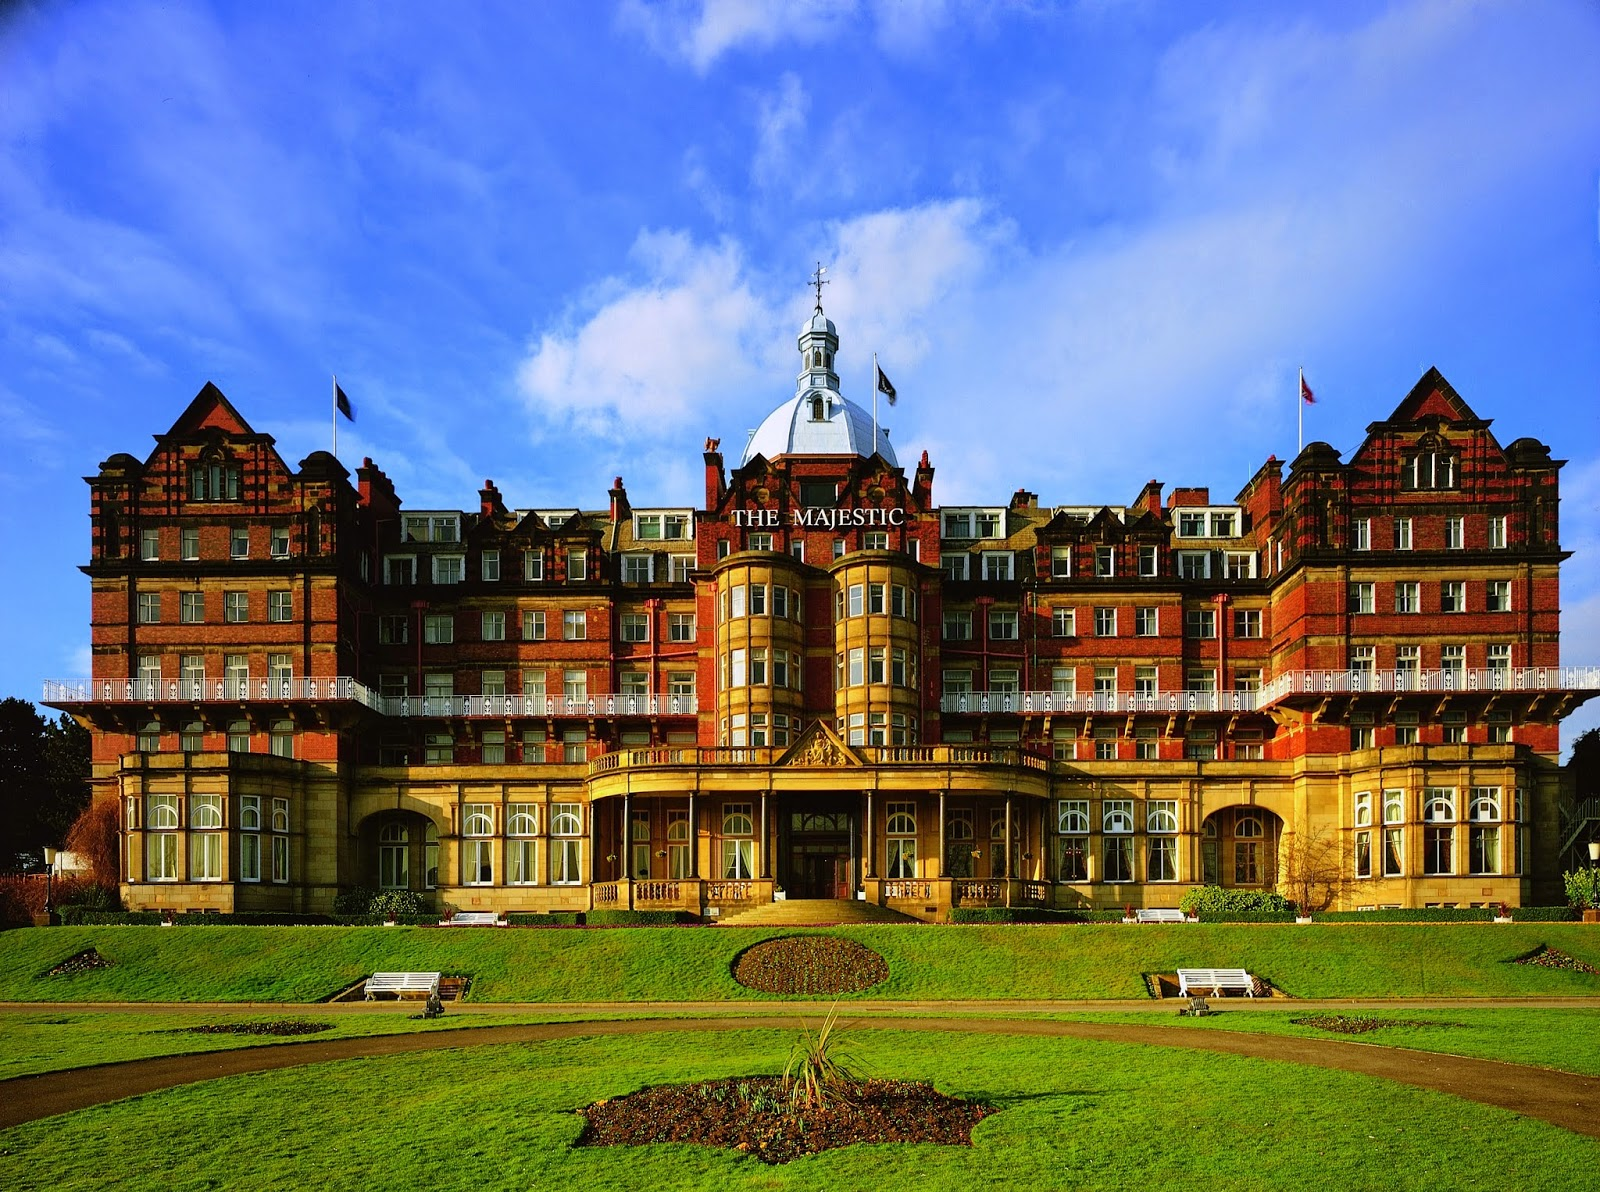 The Majestic Hotel, Harrogate - part of The Cairn Collection - photo